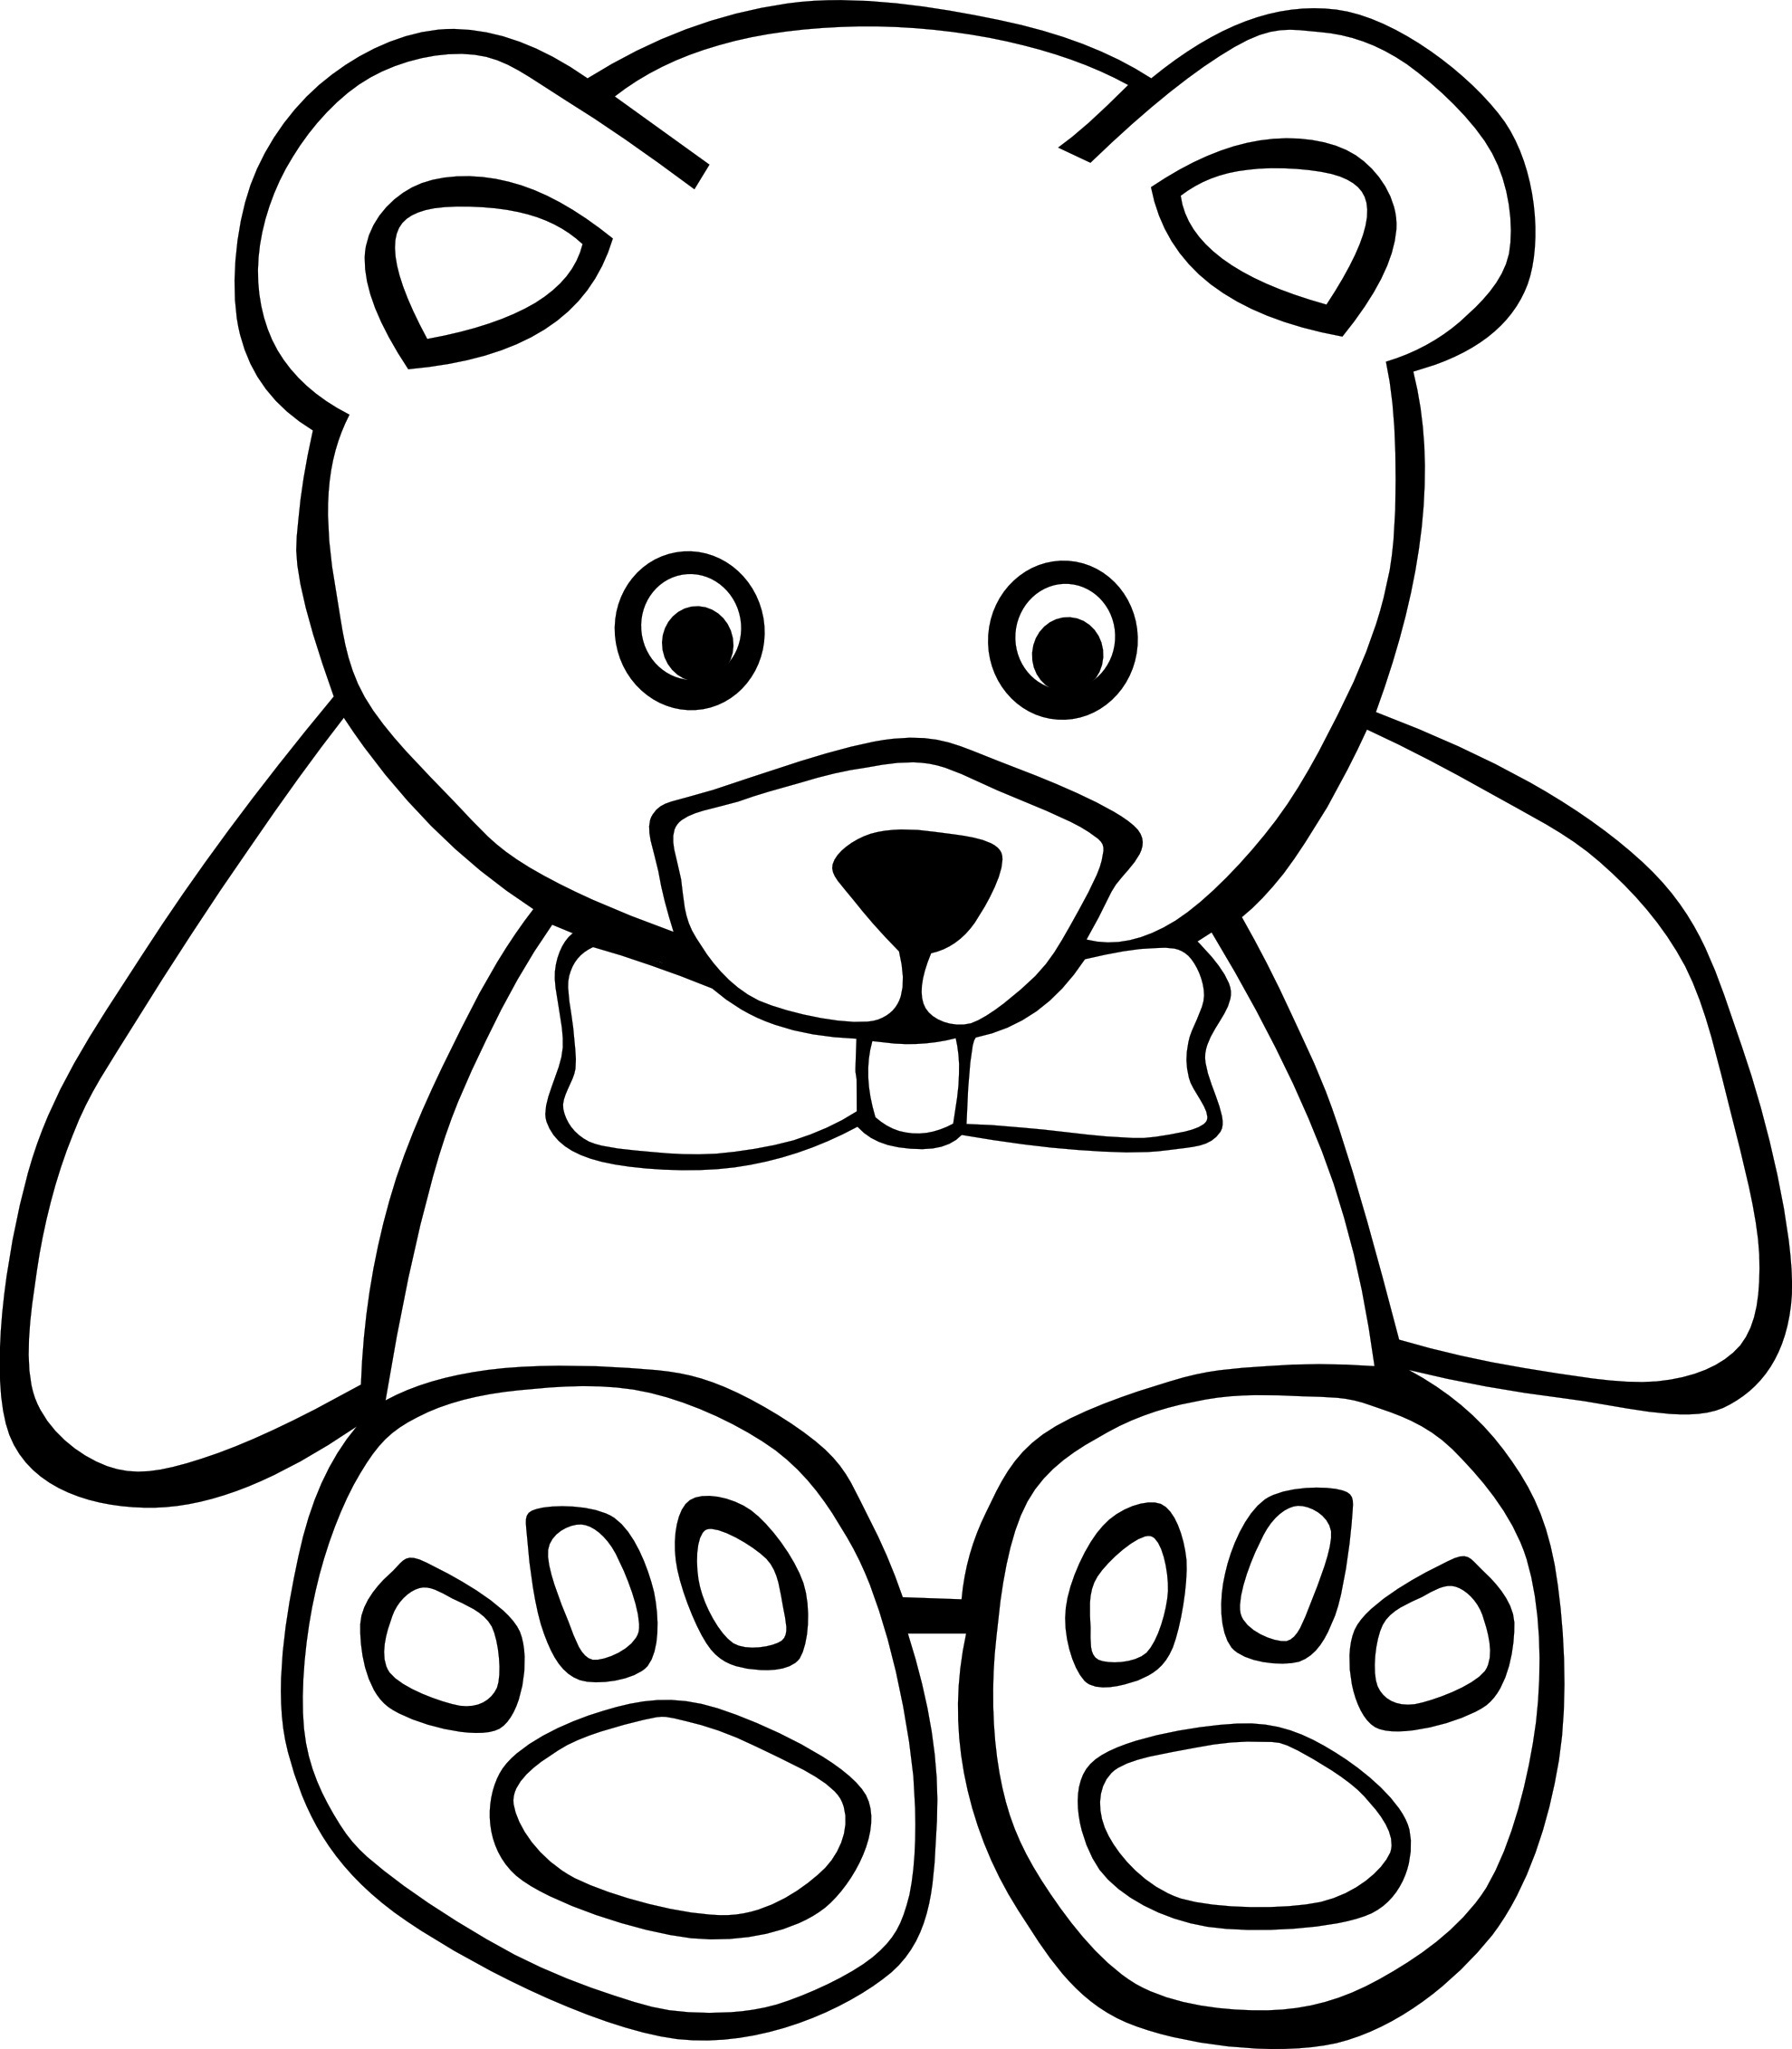 teddy bear coloring pages images - Teddy Bear Coloring Pages Free